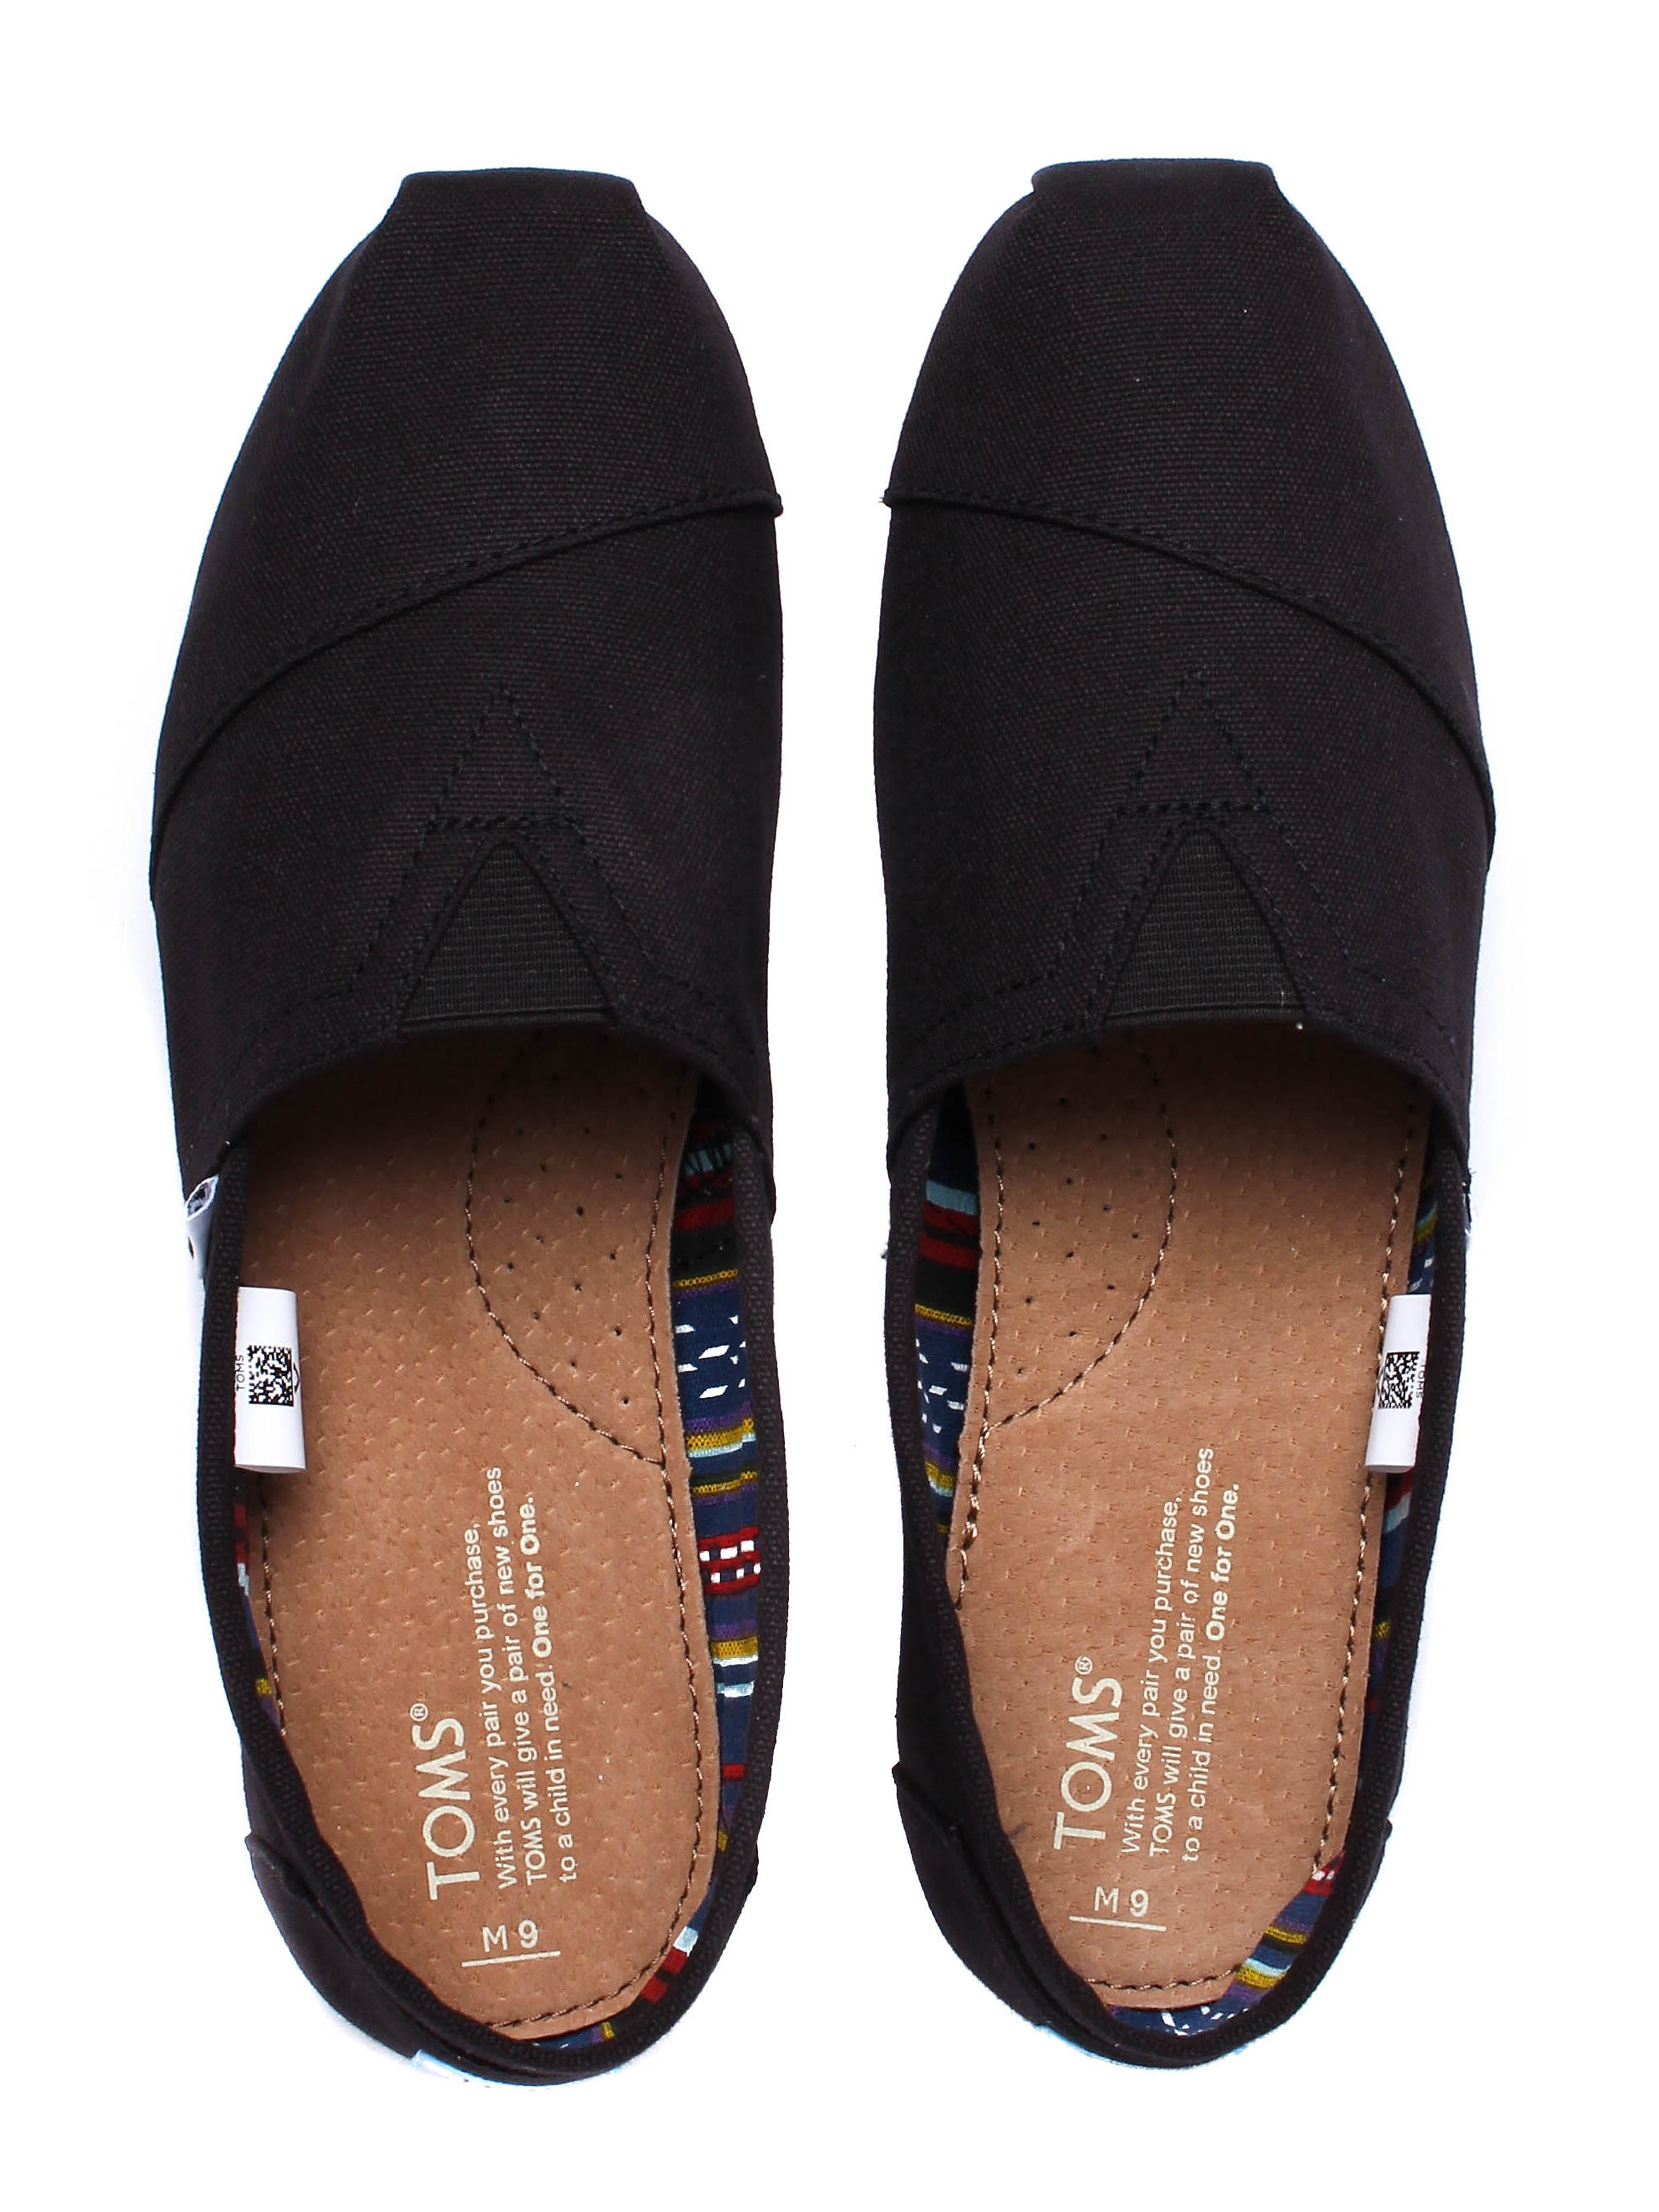 Toms Men's Classic Canvas Shoes - All Black